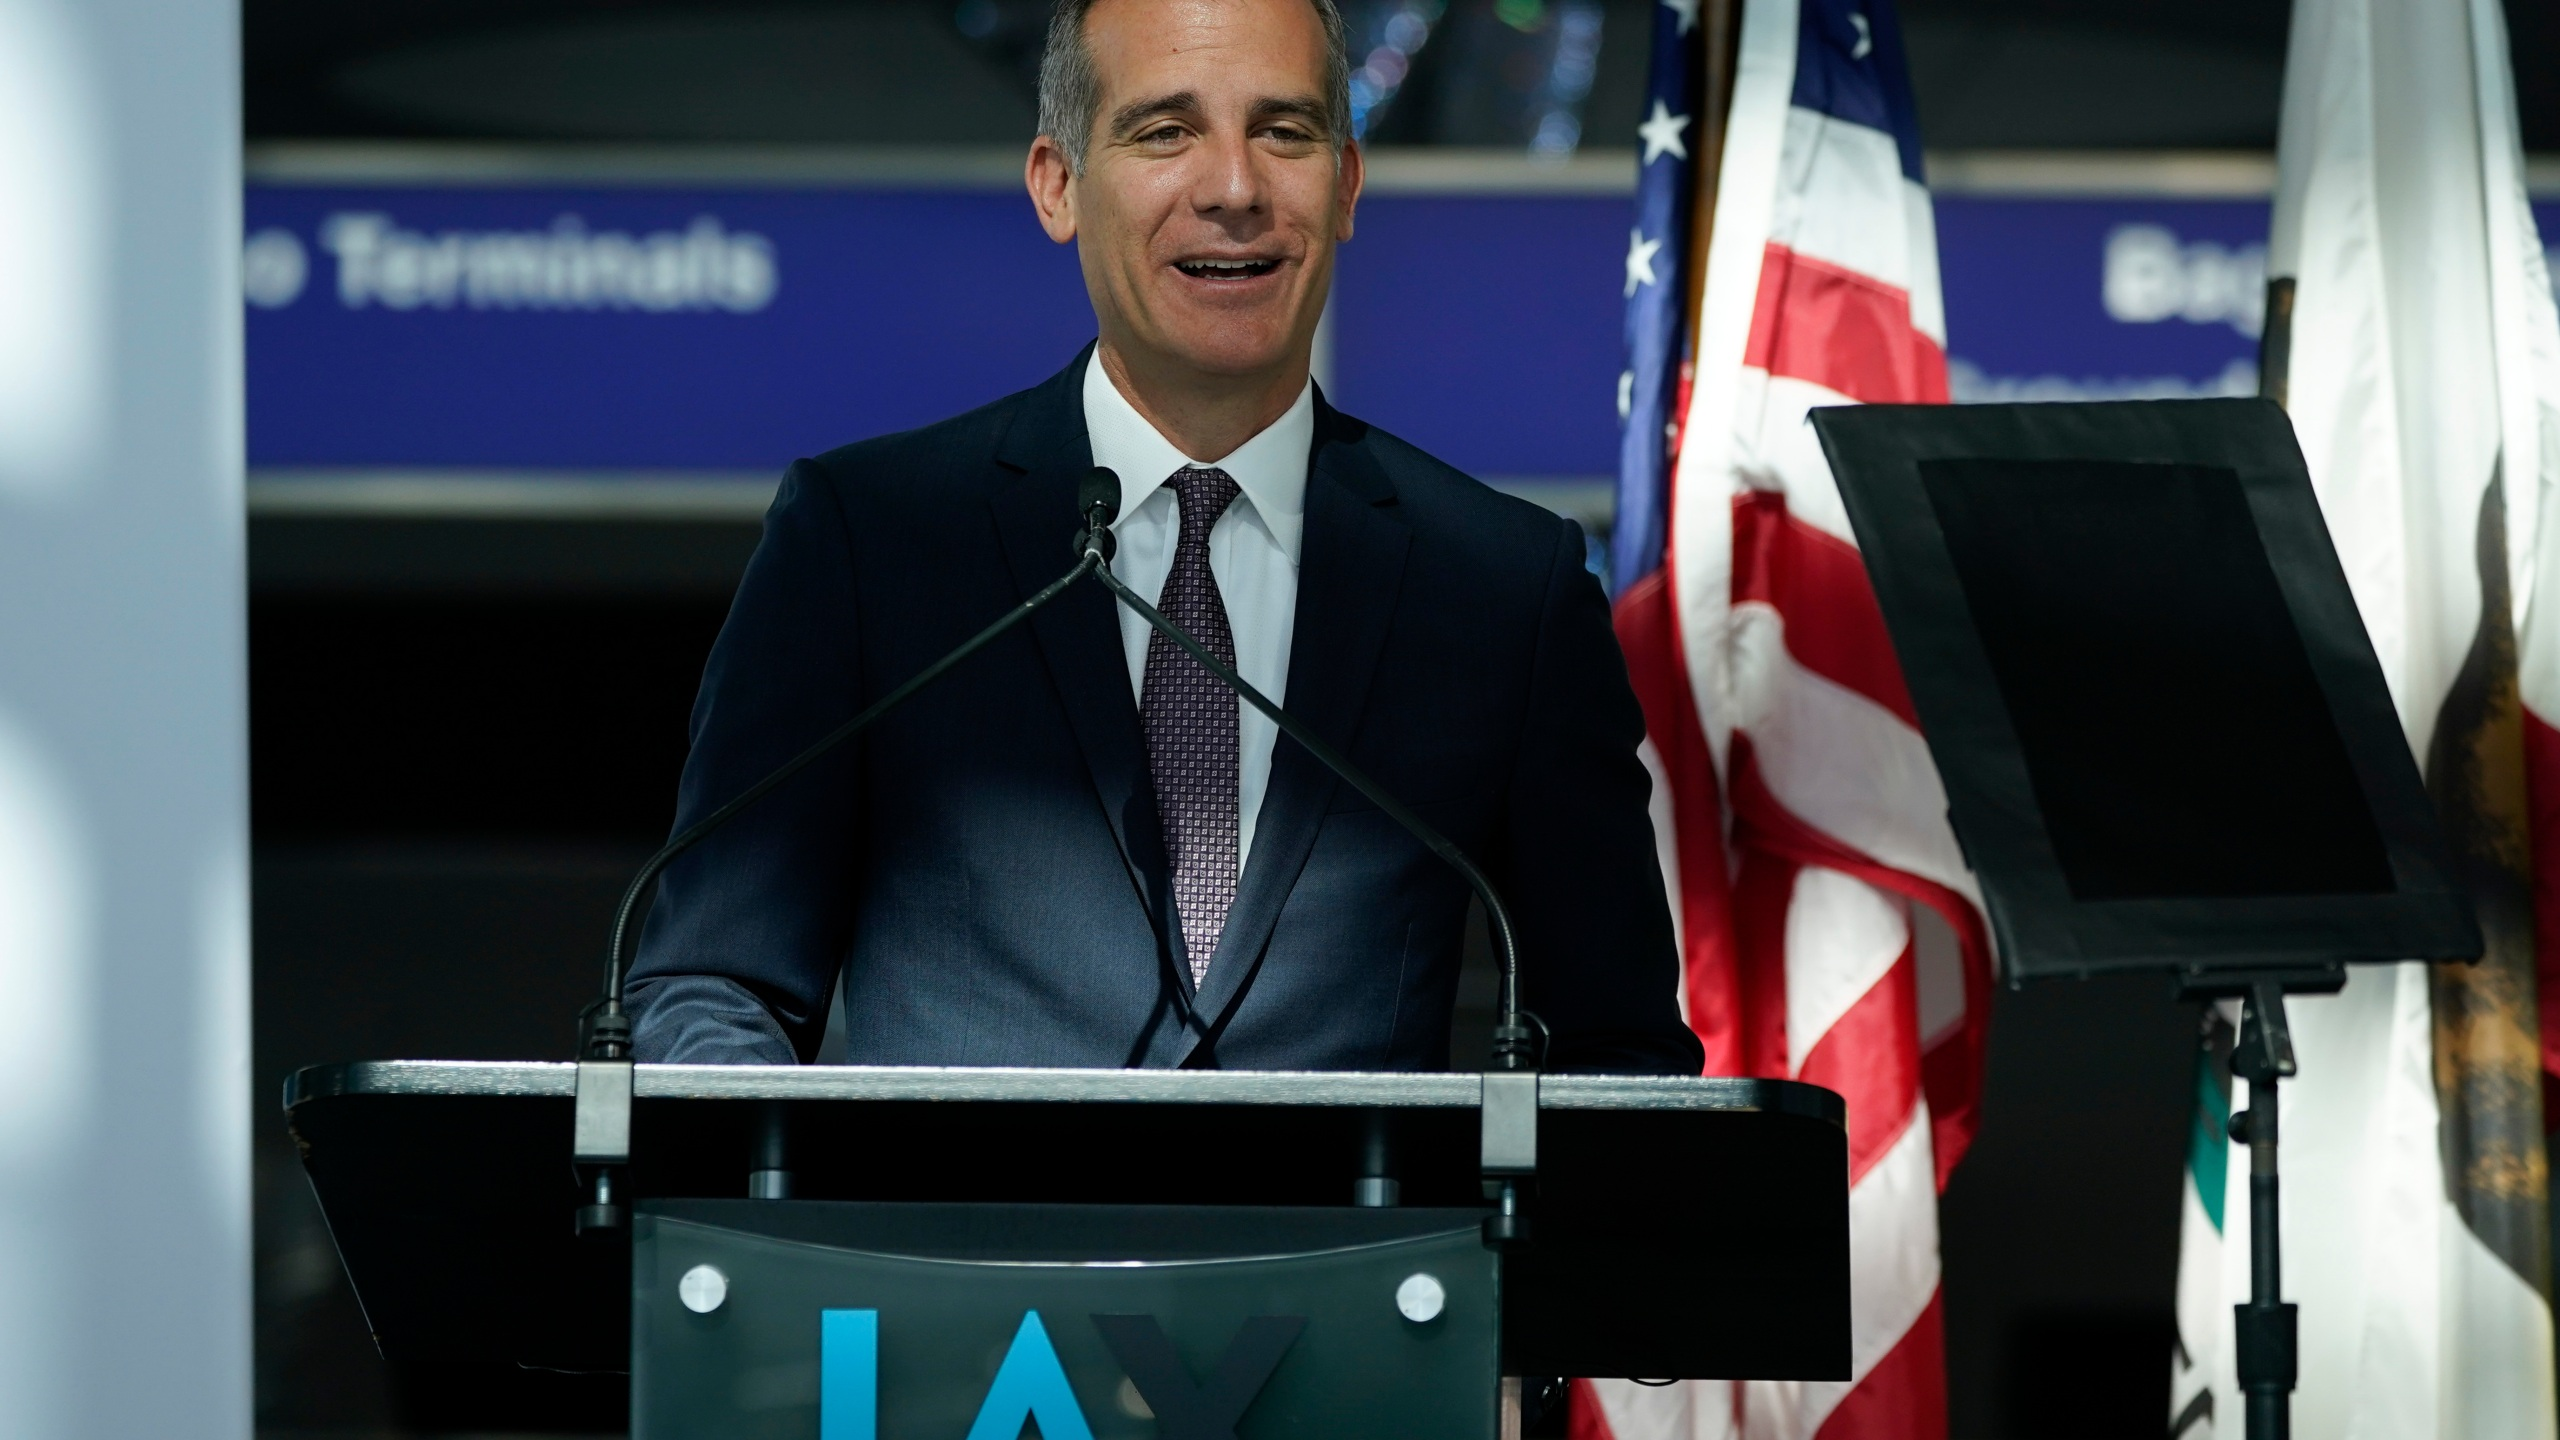 In this May 24, 2021 file photo Los Angeles Mayor Eric Garcetti speaks a press conference at Los Angeles International Airport, in Los Angeles. A group of 11 U.S. mayors have pledged to pay reparations for slavery to a small group of Black residents in their cities. The mayors have committed to form commissions to advise them on how to develop the programs. (AP Photo/Ashley Landis, File)